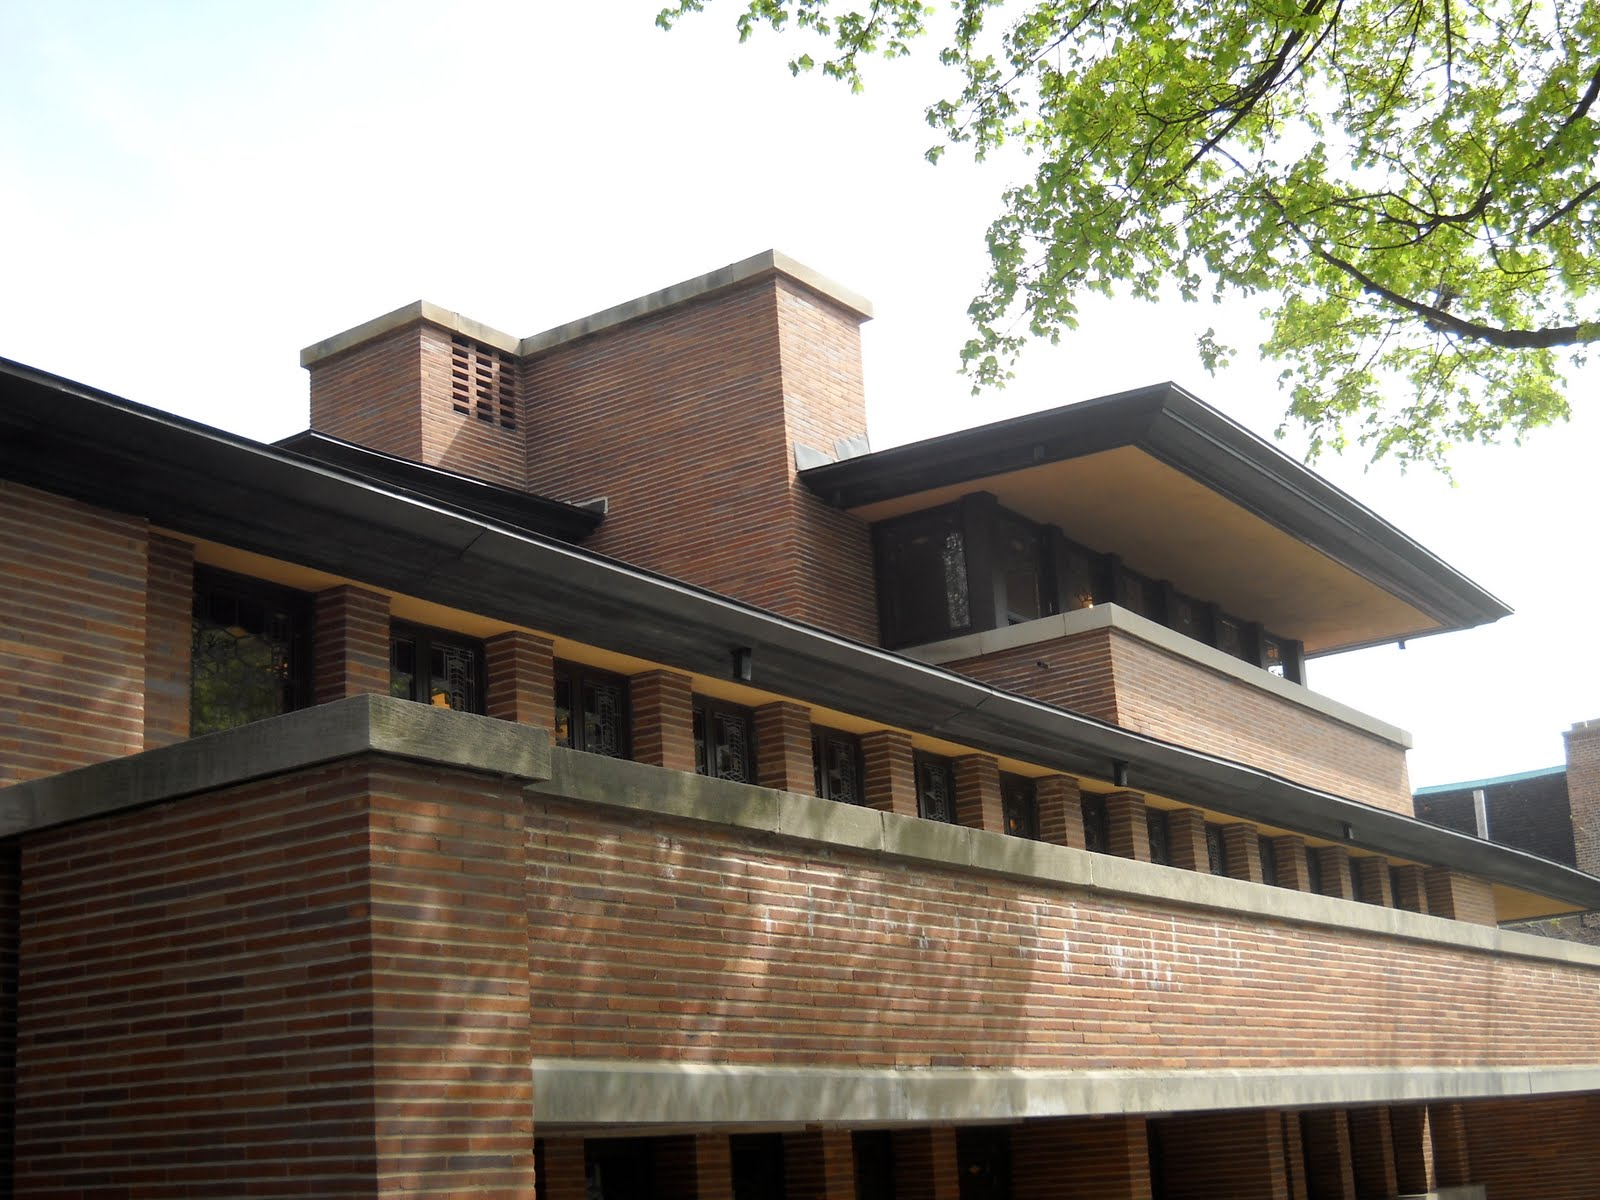 robie house W hen frederick robie commissioned frank lloyd wright to design a home for him and his growing family in 1908, neither man knew that the home's iconic design would.